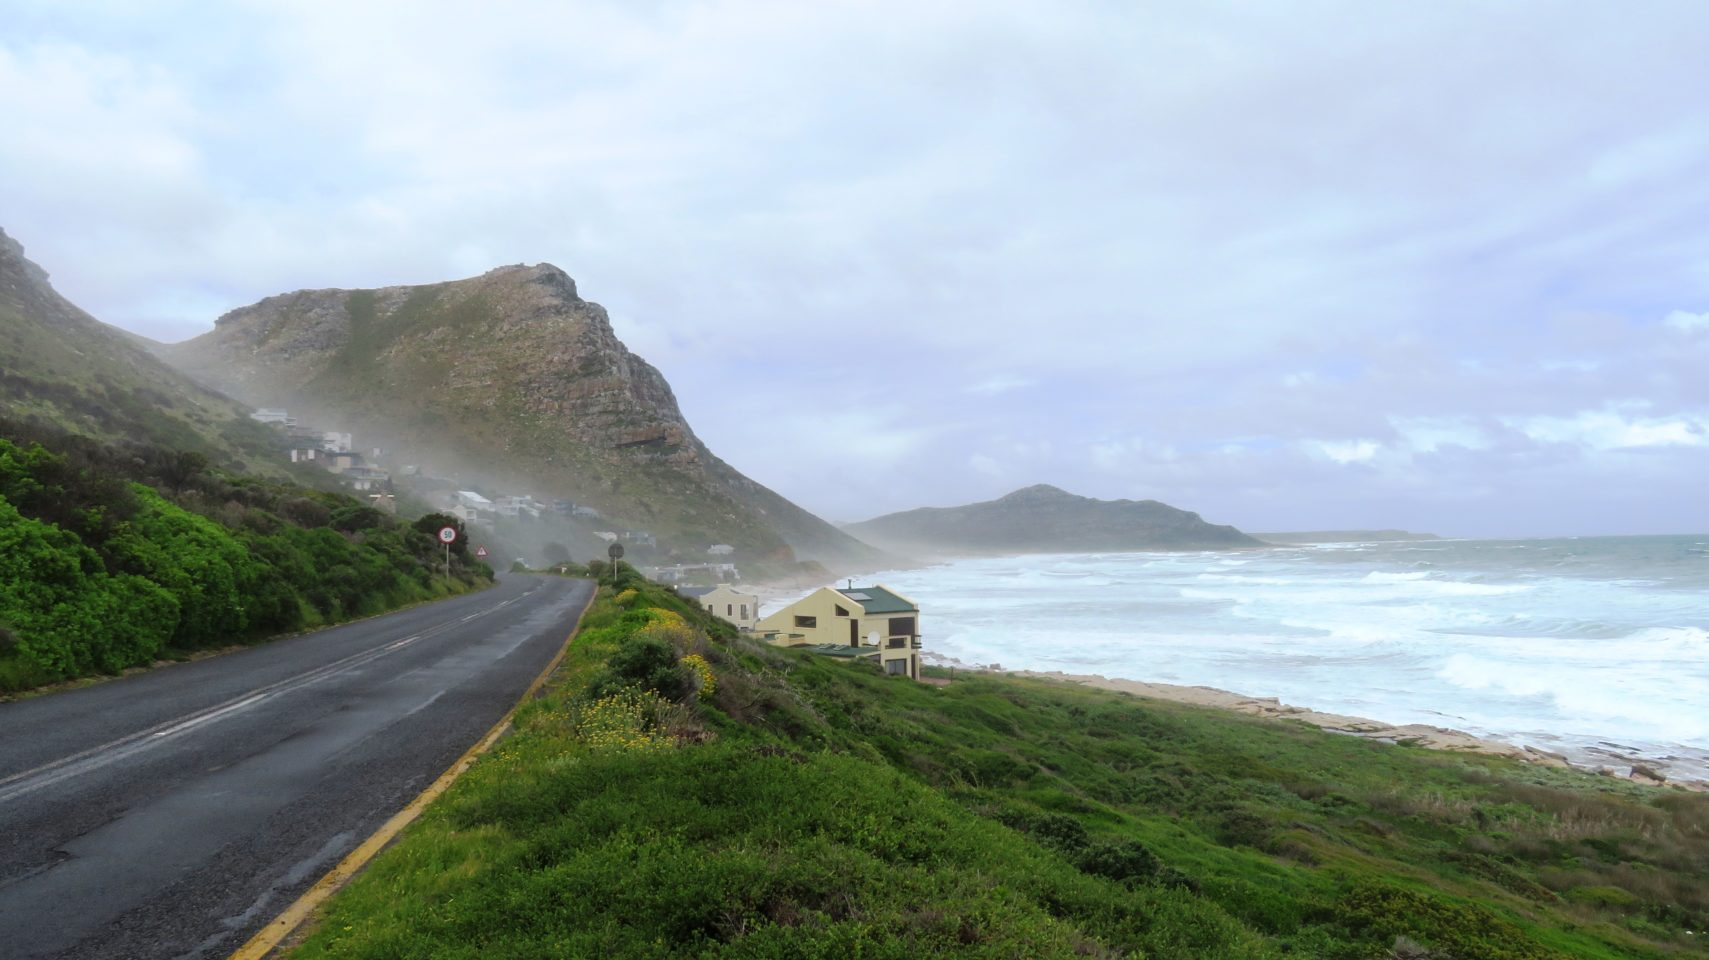 """Aptly named """"Misty Cliffs"""", this fishing village nestled in the hillside with its rockeries, wild flowers and wild ocean is quintessential Cape Peninsula"""